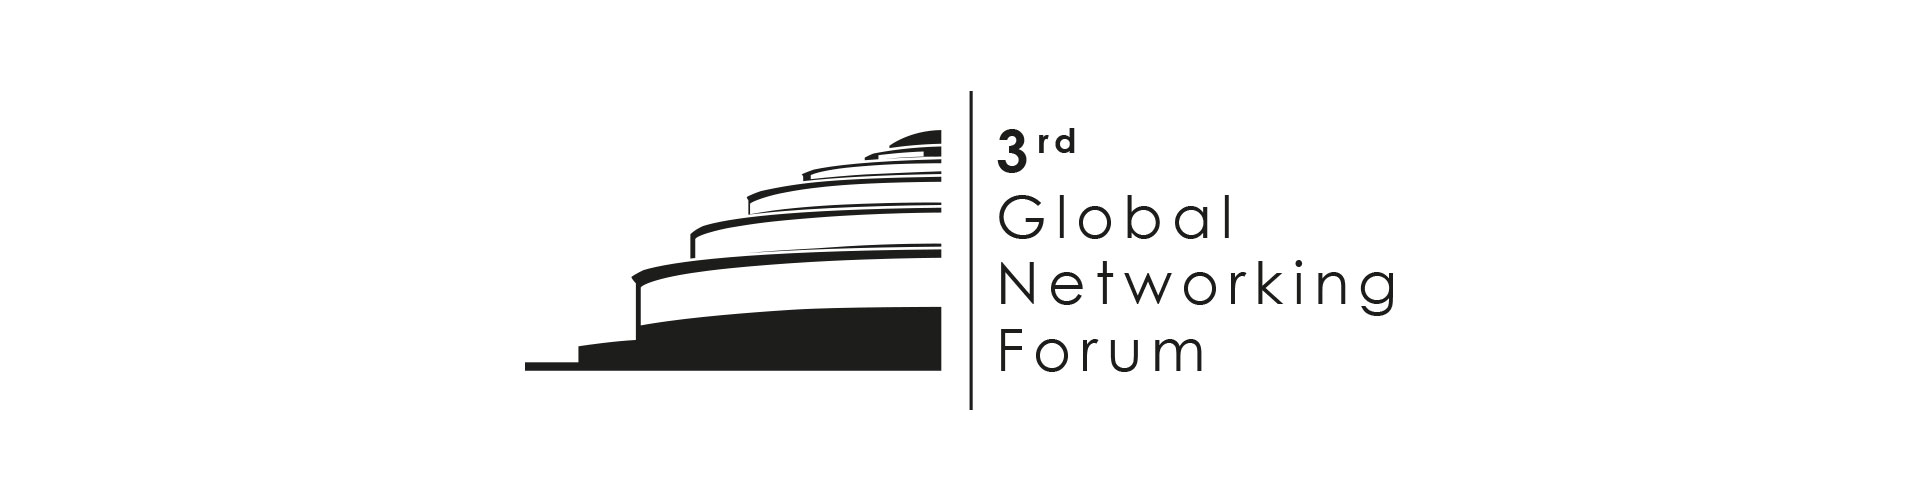 3rd Global Networking Forum!